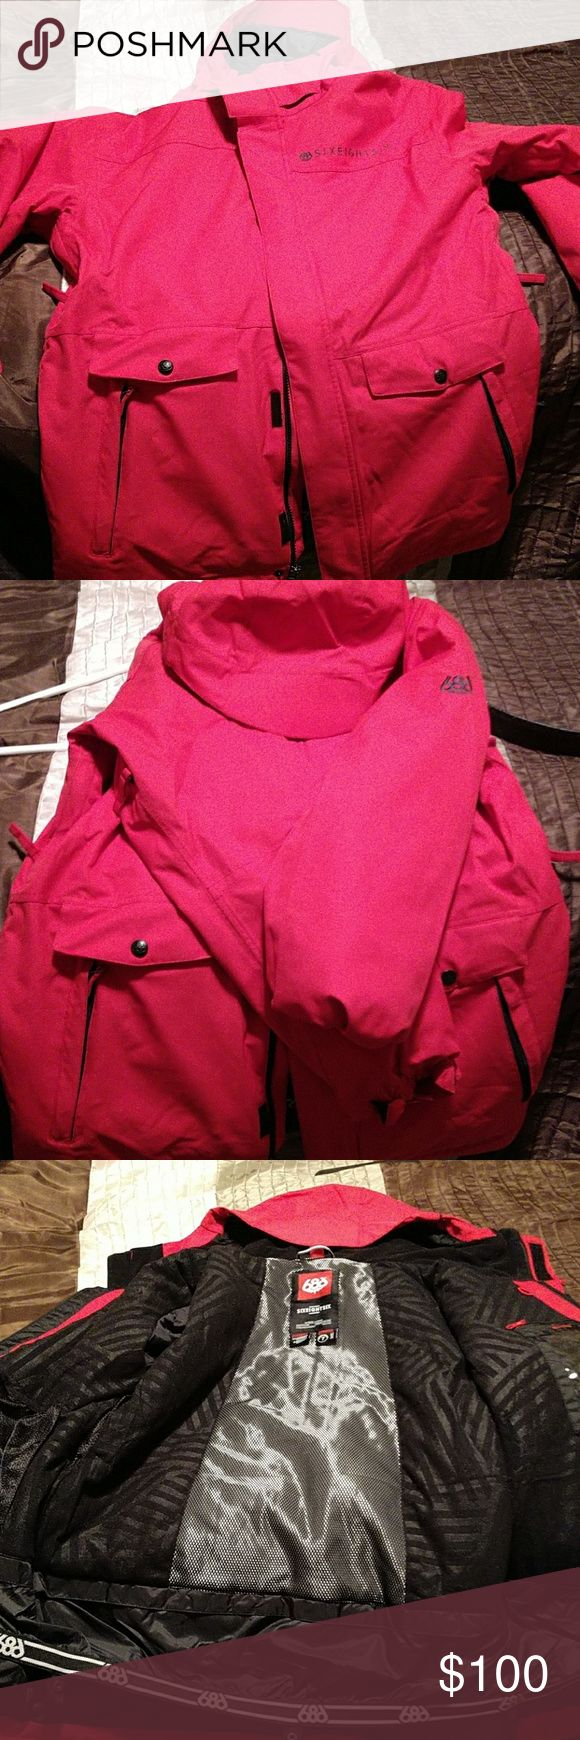 686 snowboard jacket 686 jacket in great condition 686 Jackets & Coats